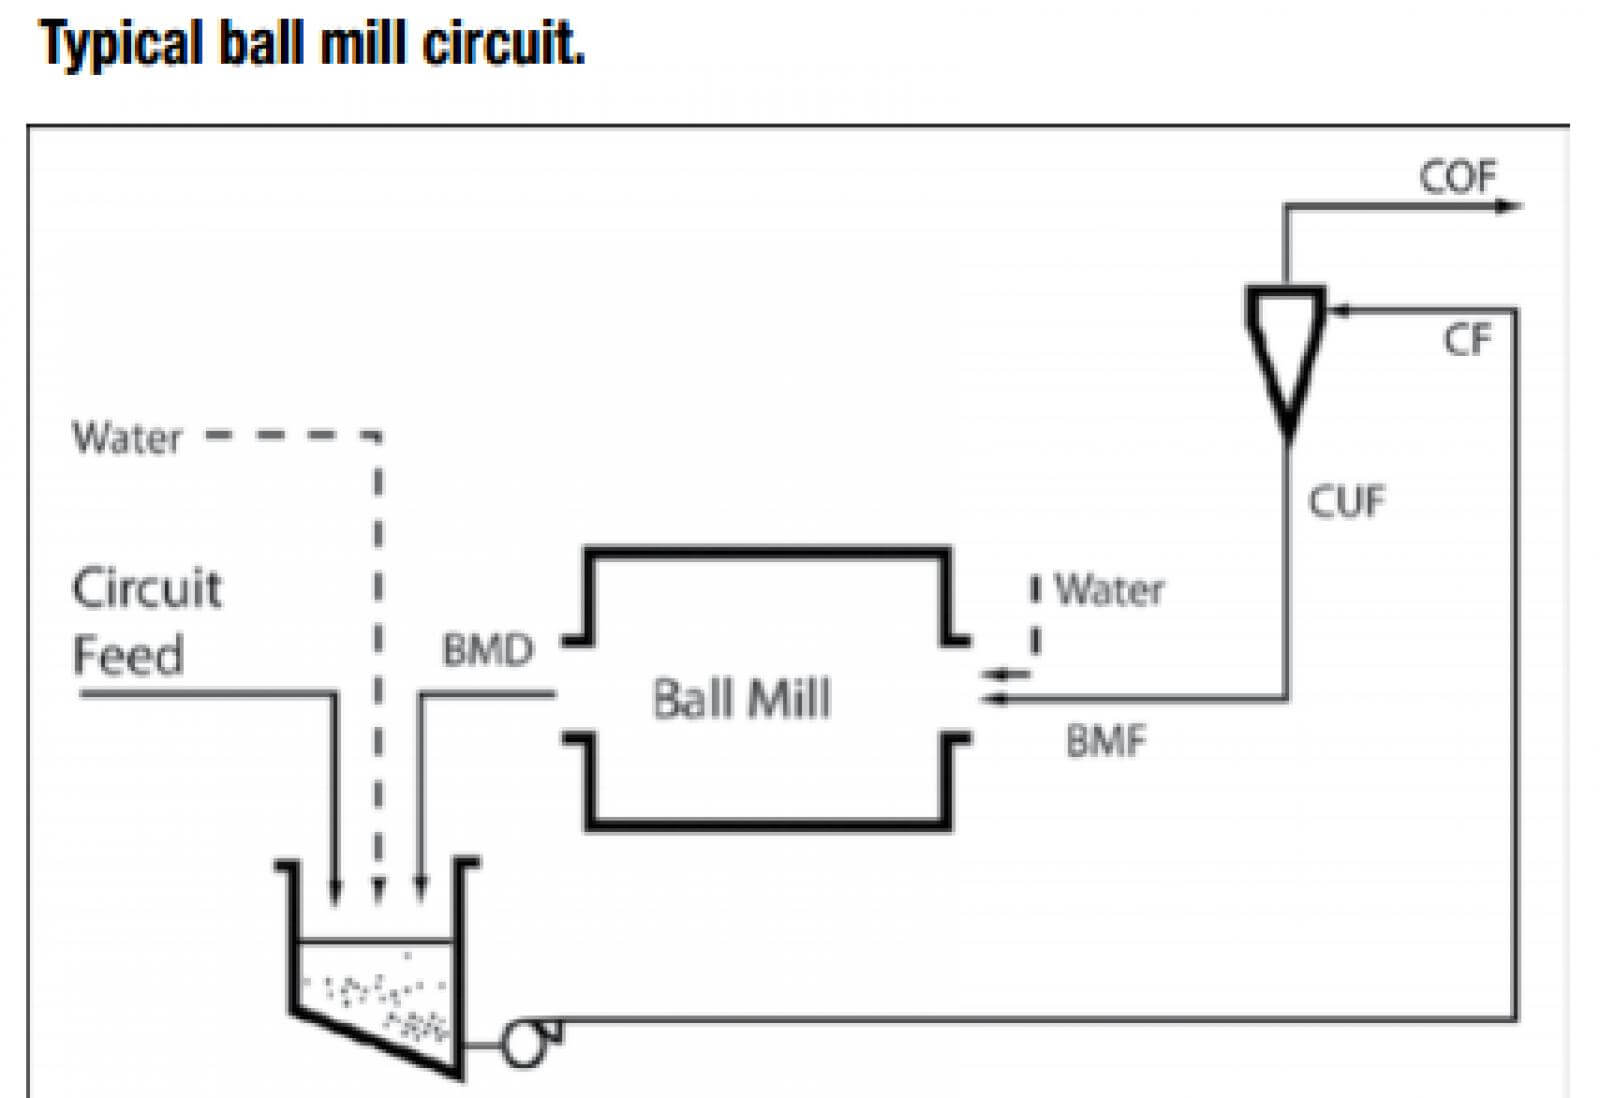 High Recirculating Loads In Ball Mill Circuits